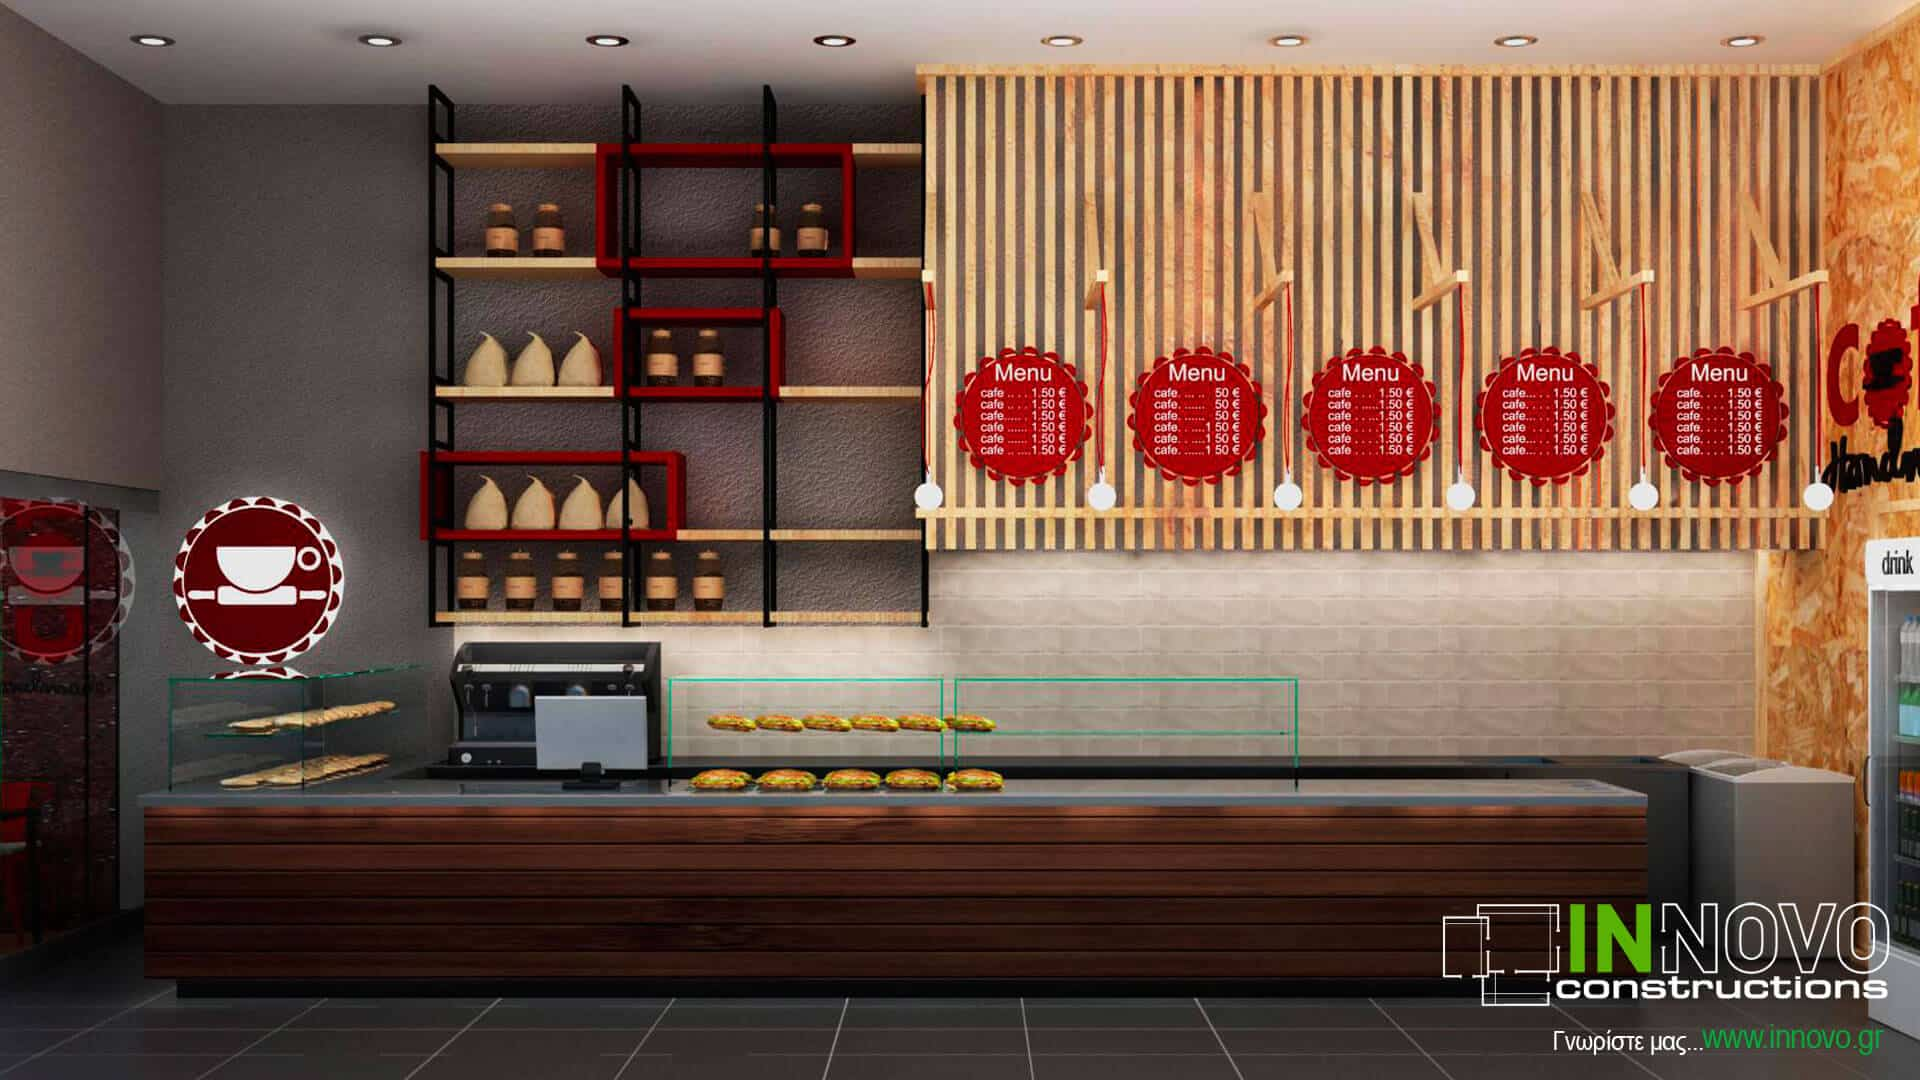 kataskevi-snack-cafe-construction-cafe-melissia-1720-4